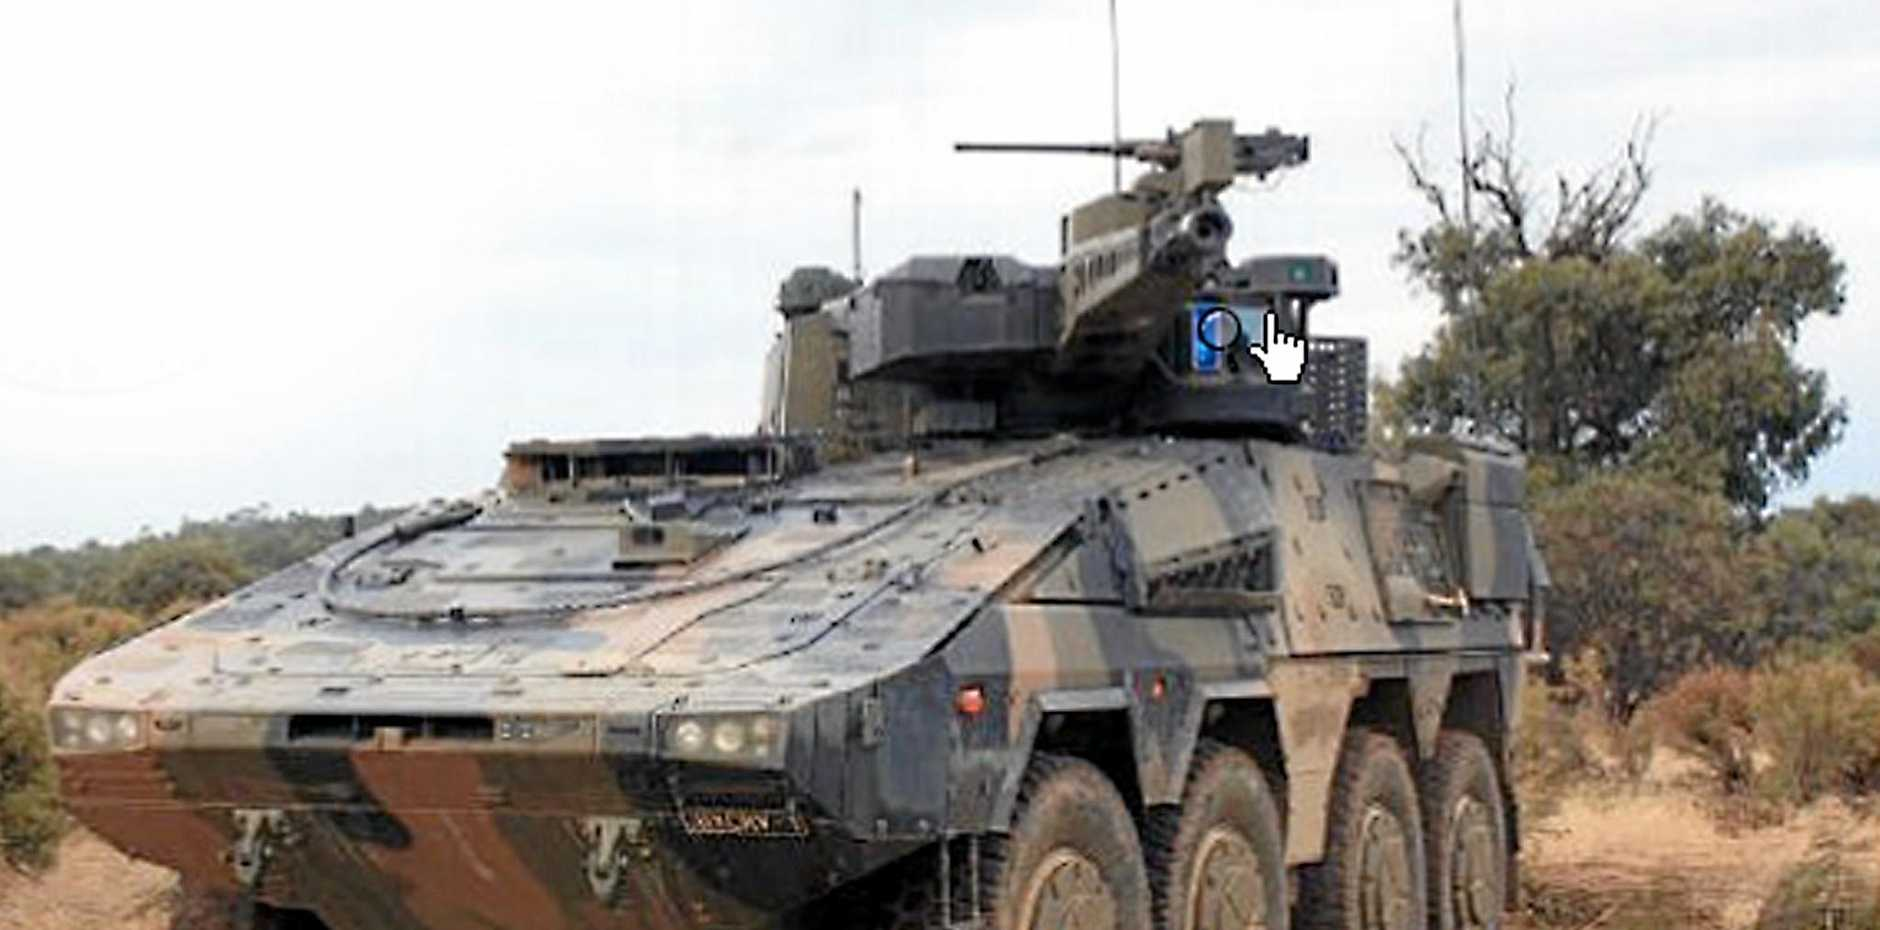 POWER: A BOXER CRV tank supplied by Rheinmetall. The German-based company has nominated Ipswich as the location where it will build Army tanks if it wins the $5 billion Land 400 tender.